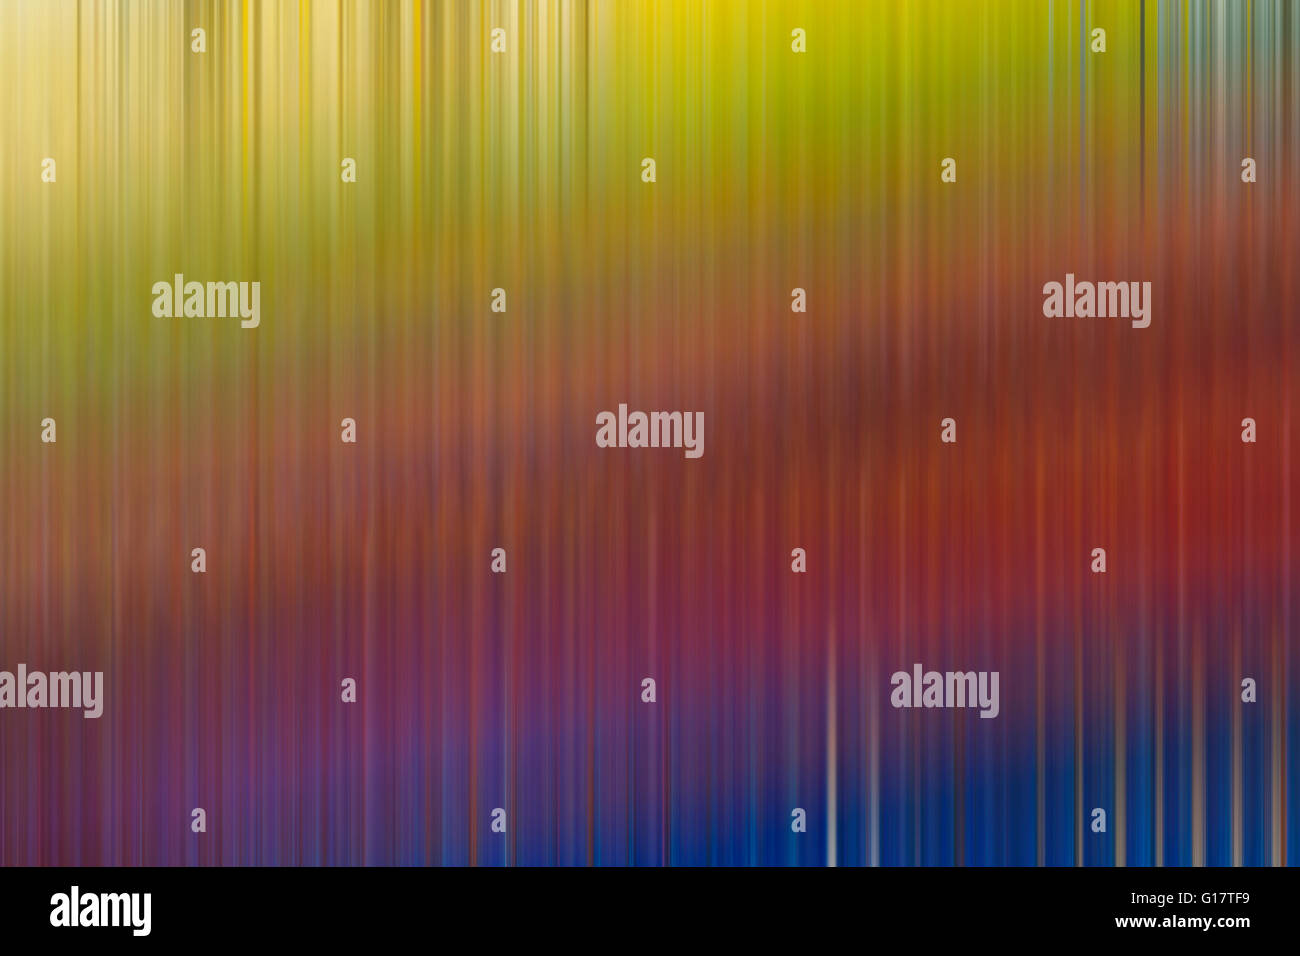 subdued colours high resolution stock photography and images alamy alamy